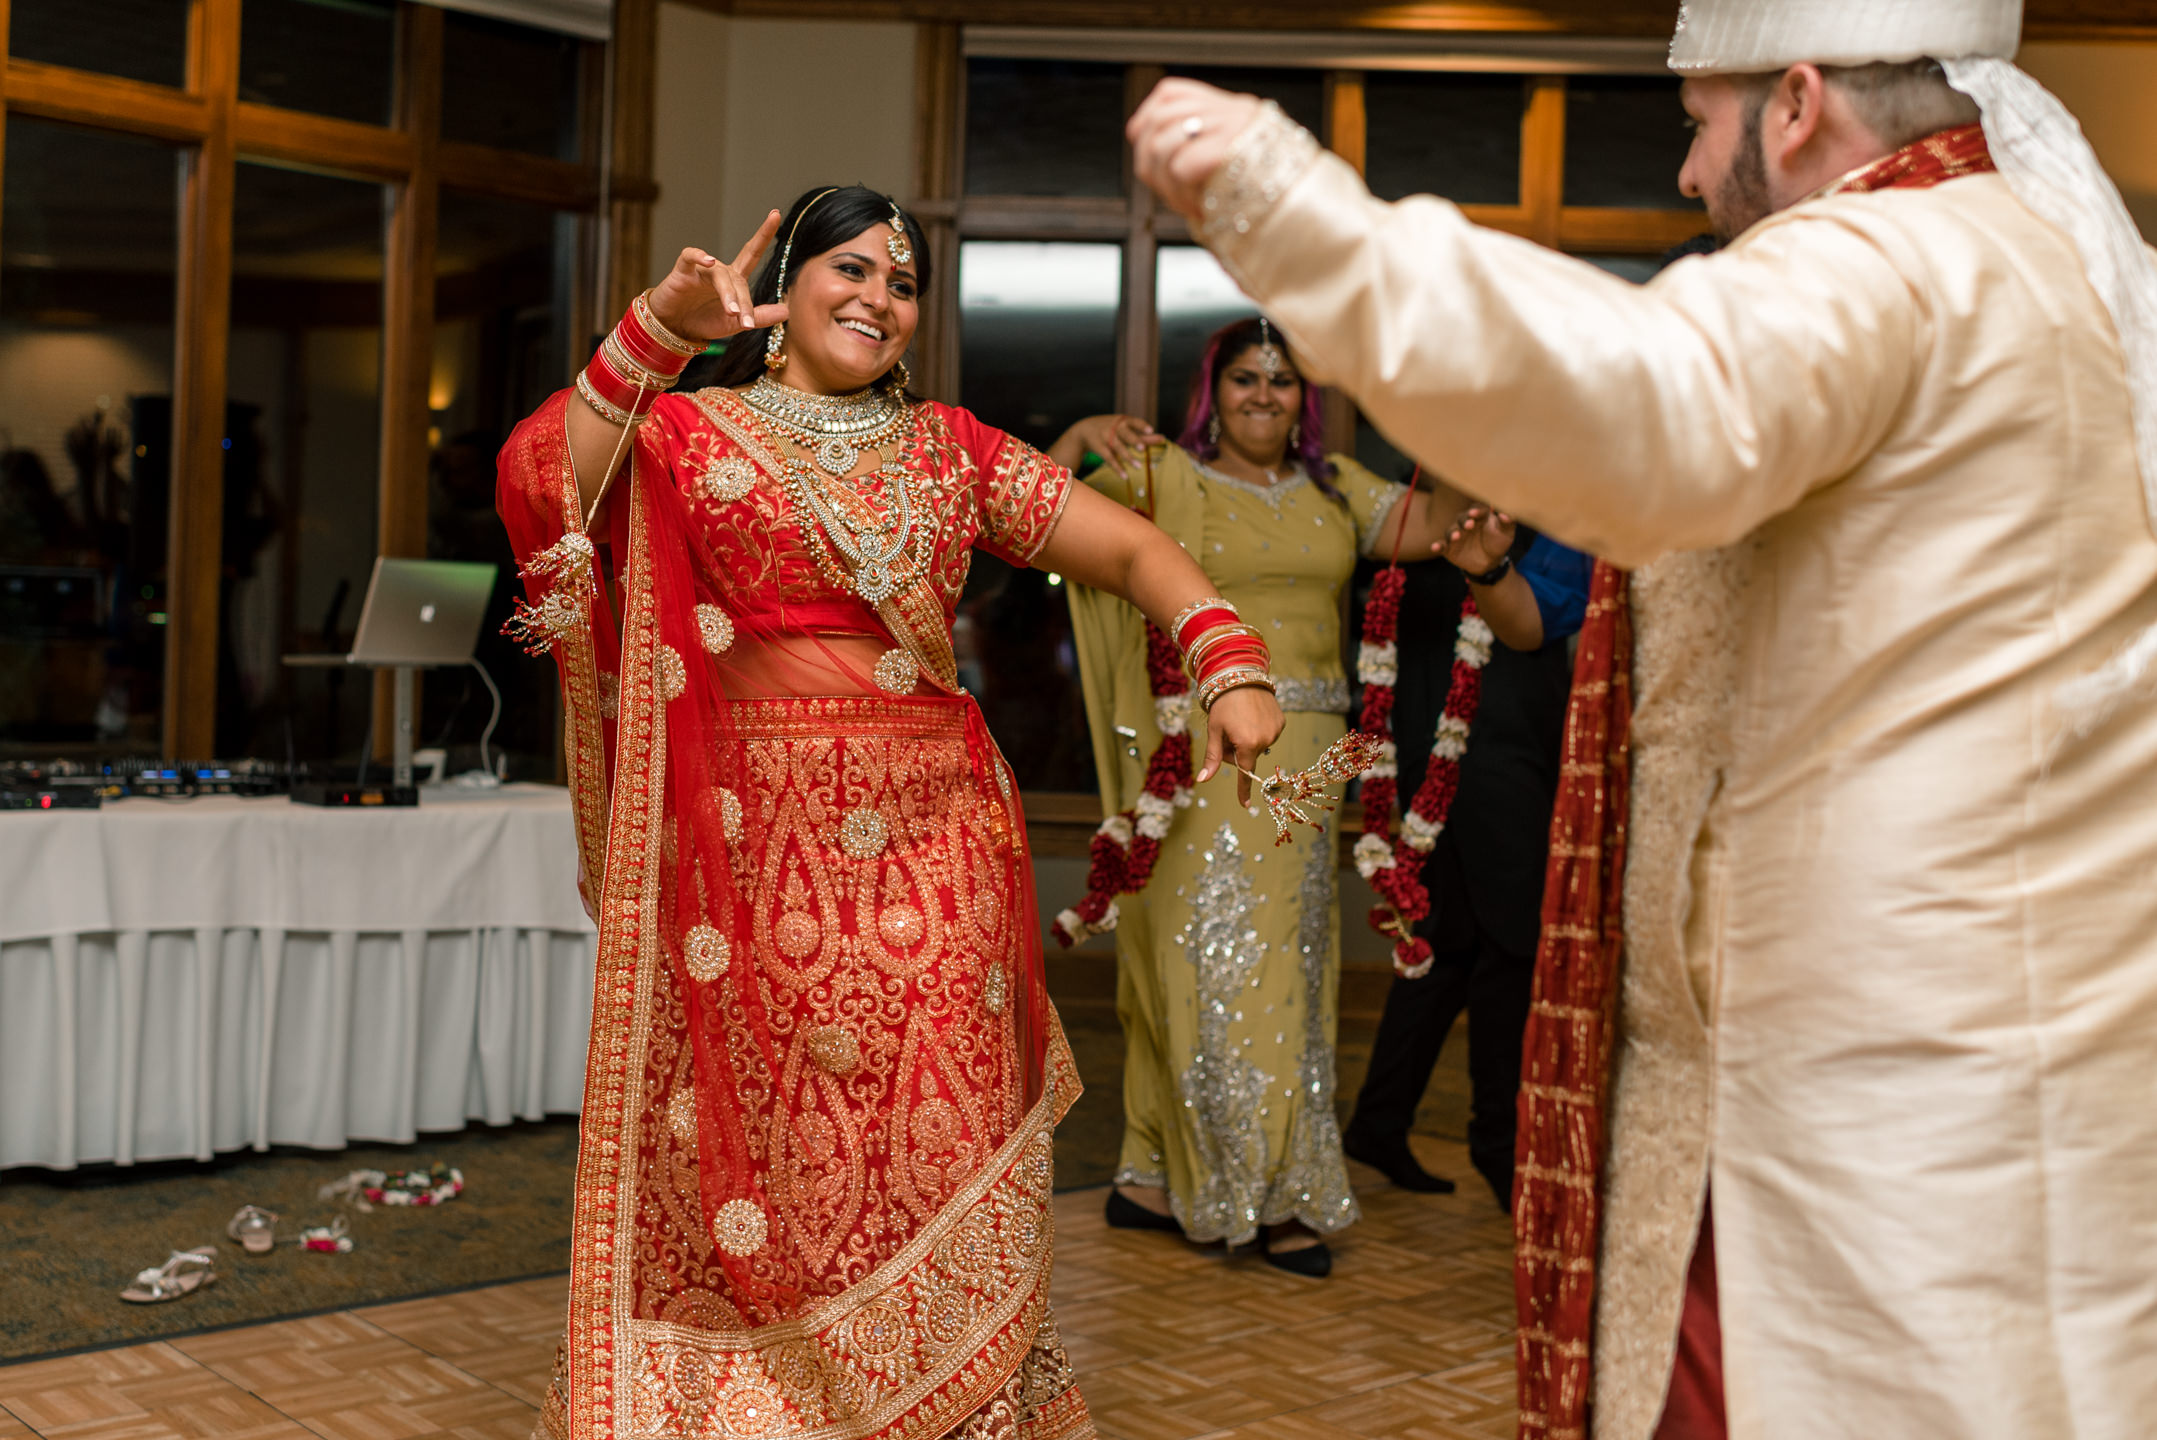 Indian Bride and Groom Dance during Wedding Reception